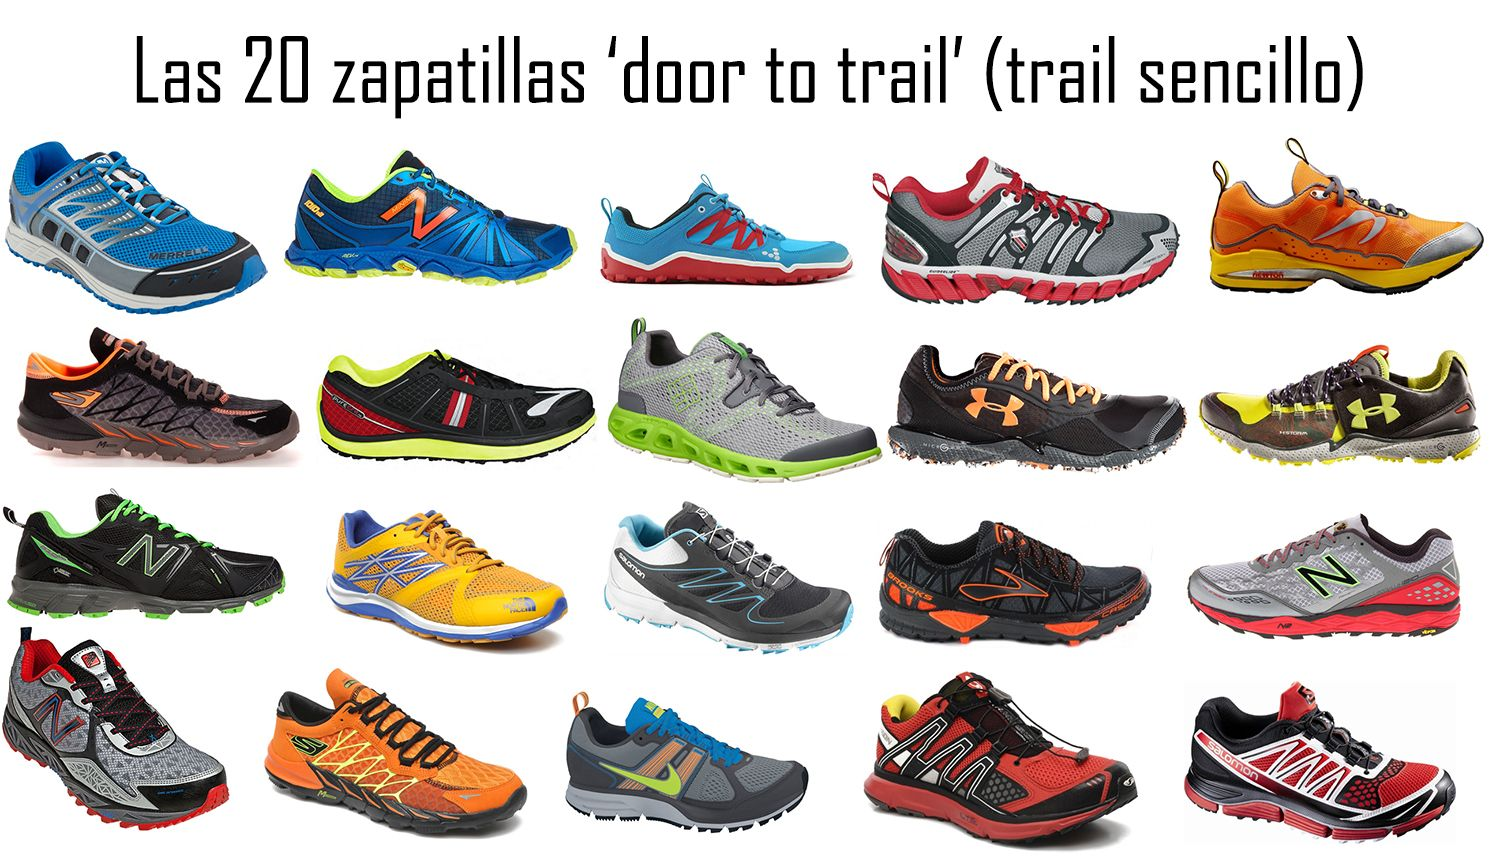 La guía definitiva de las zapatillas 'door to trail'